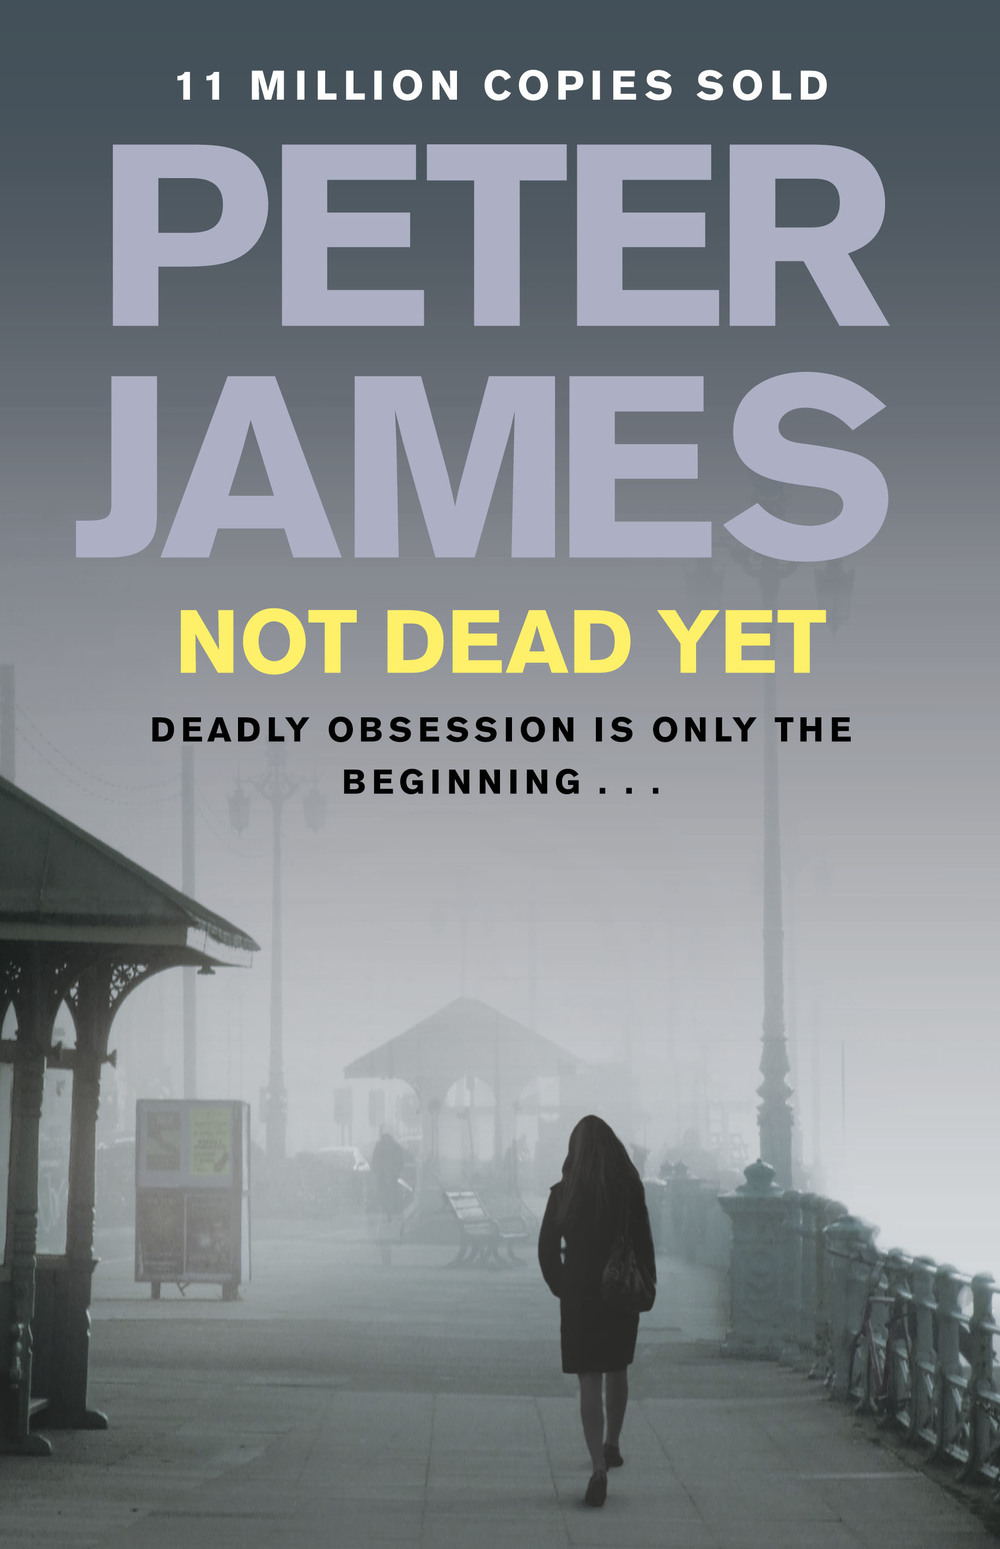 NOT DEAD YET Macmillan Hdbk cover.jpg